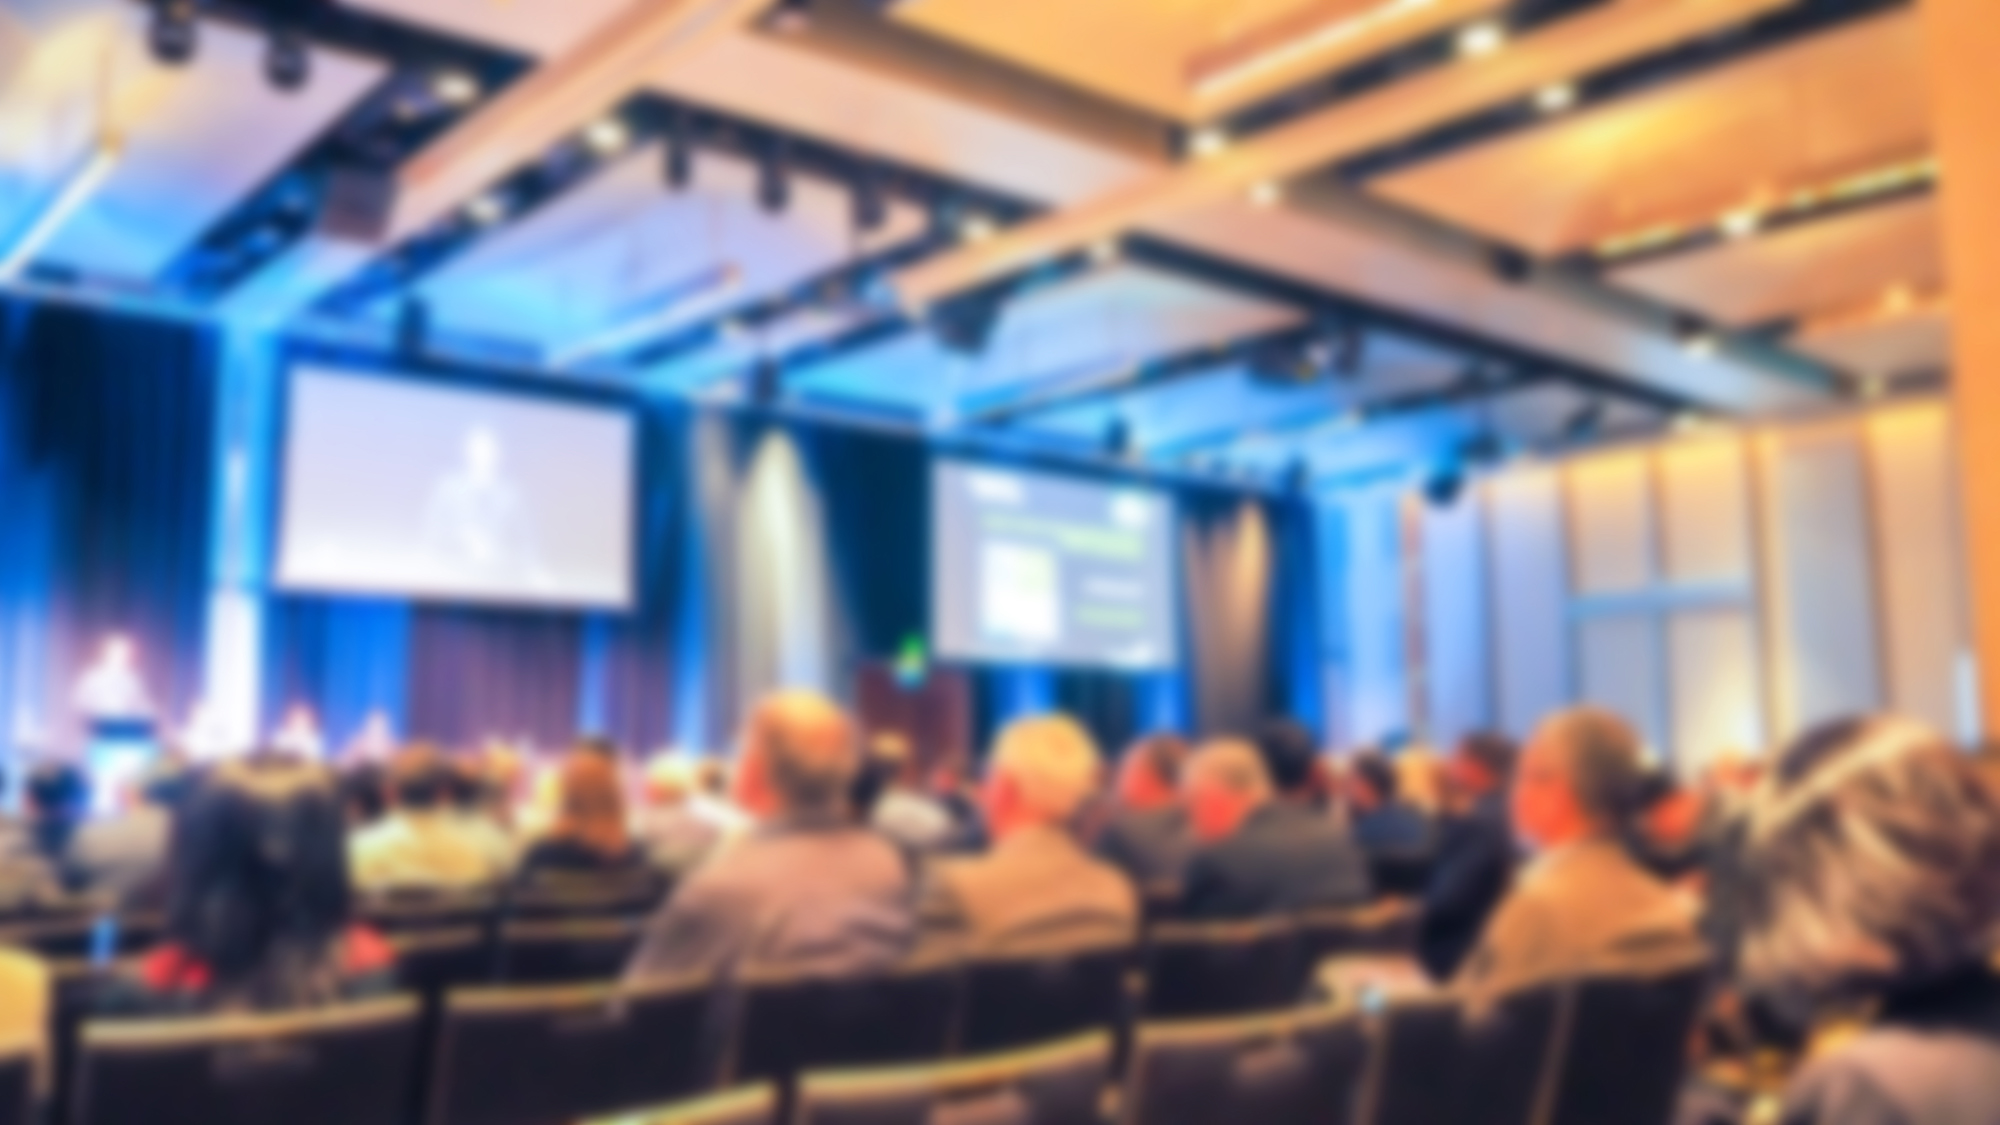 Fuzzy image of speaker presenting on stage under two projection screens